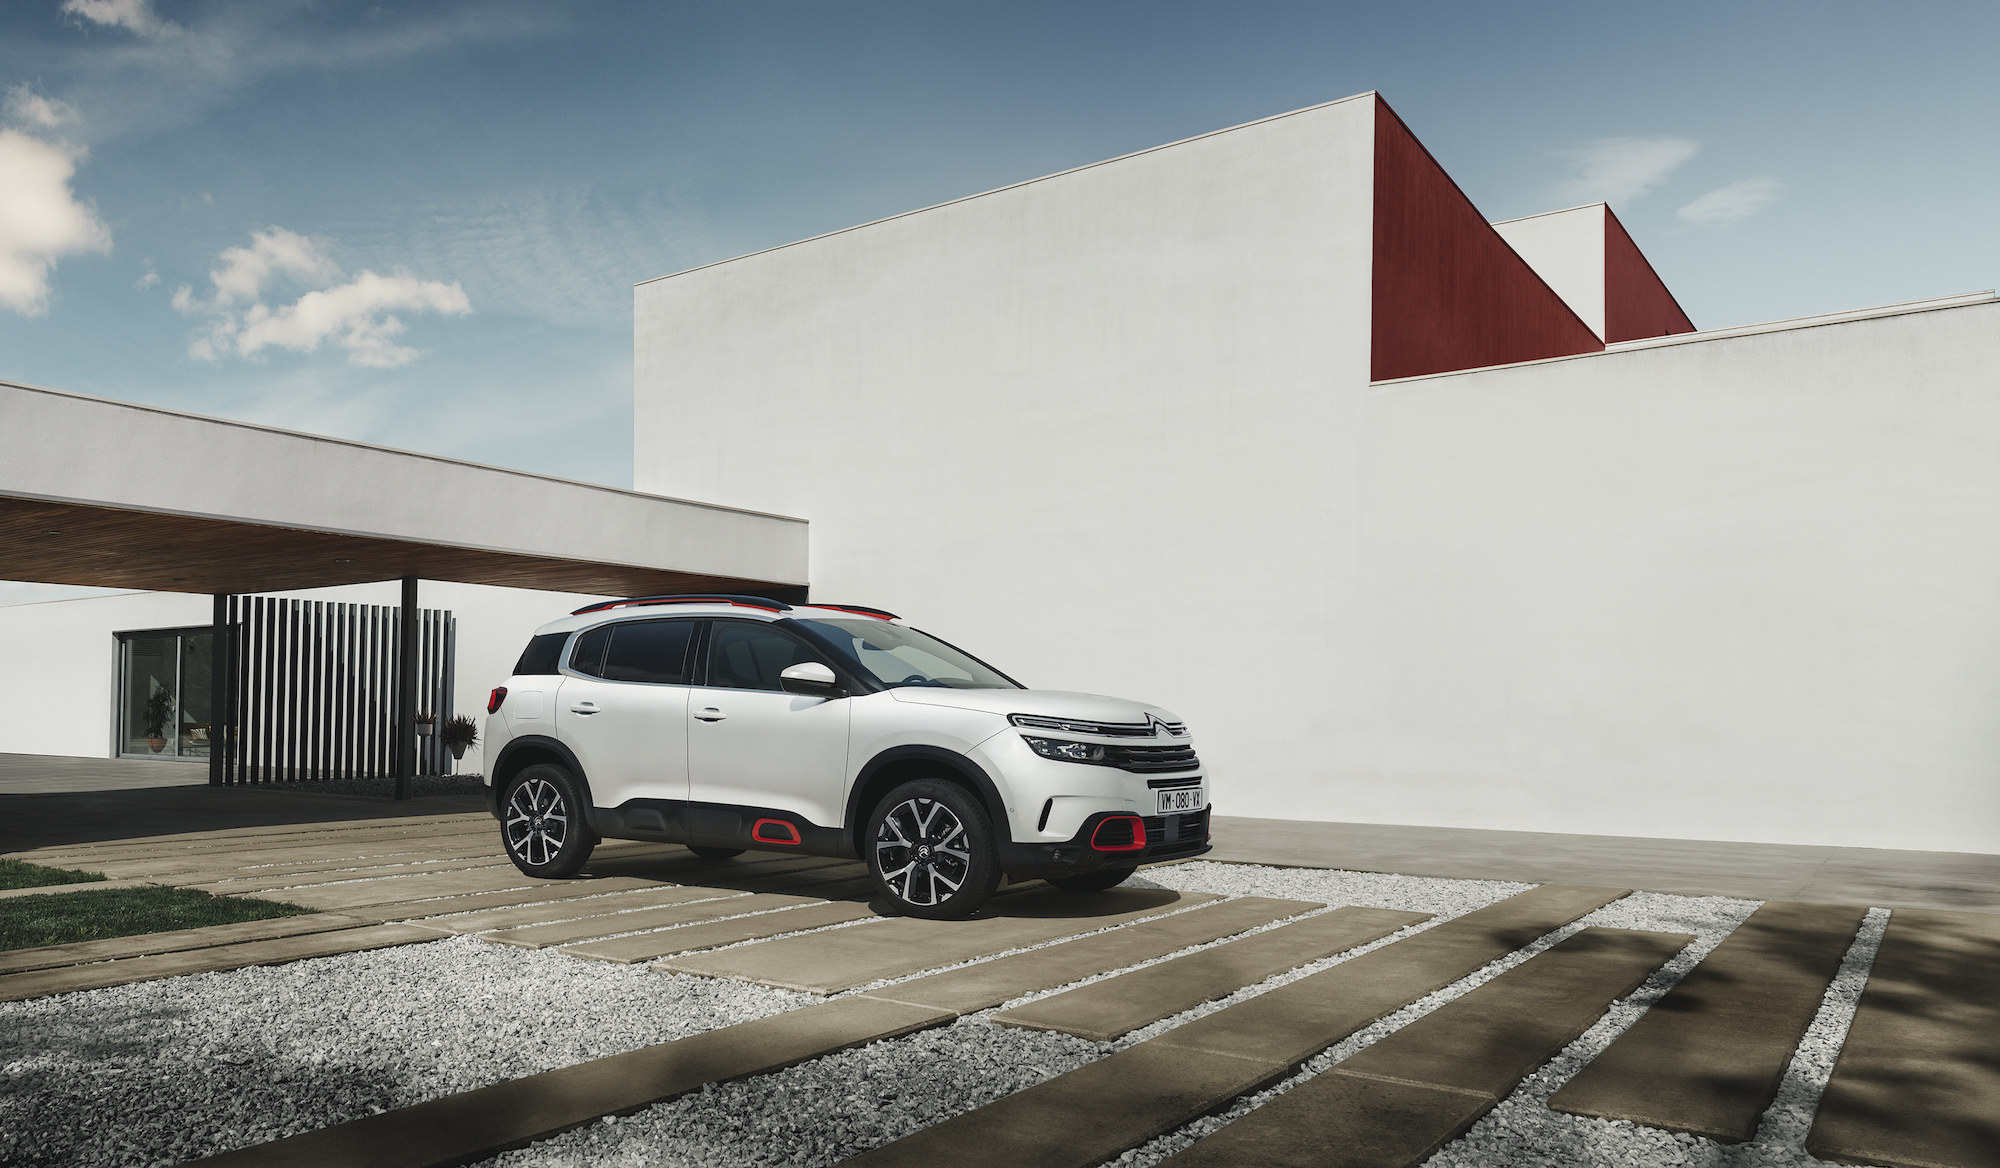 New C5 Aircross lands in Ireland